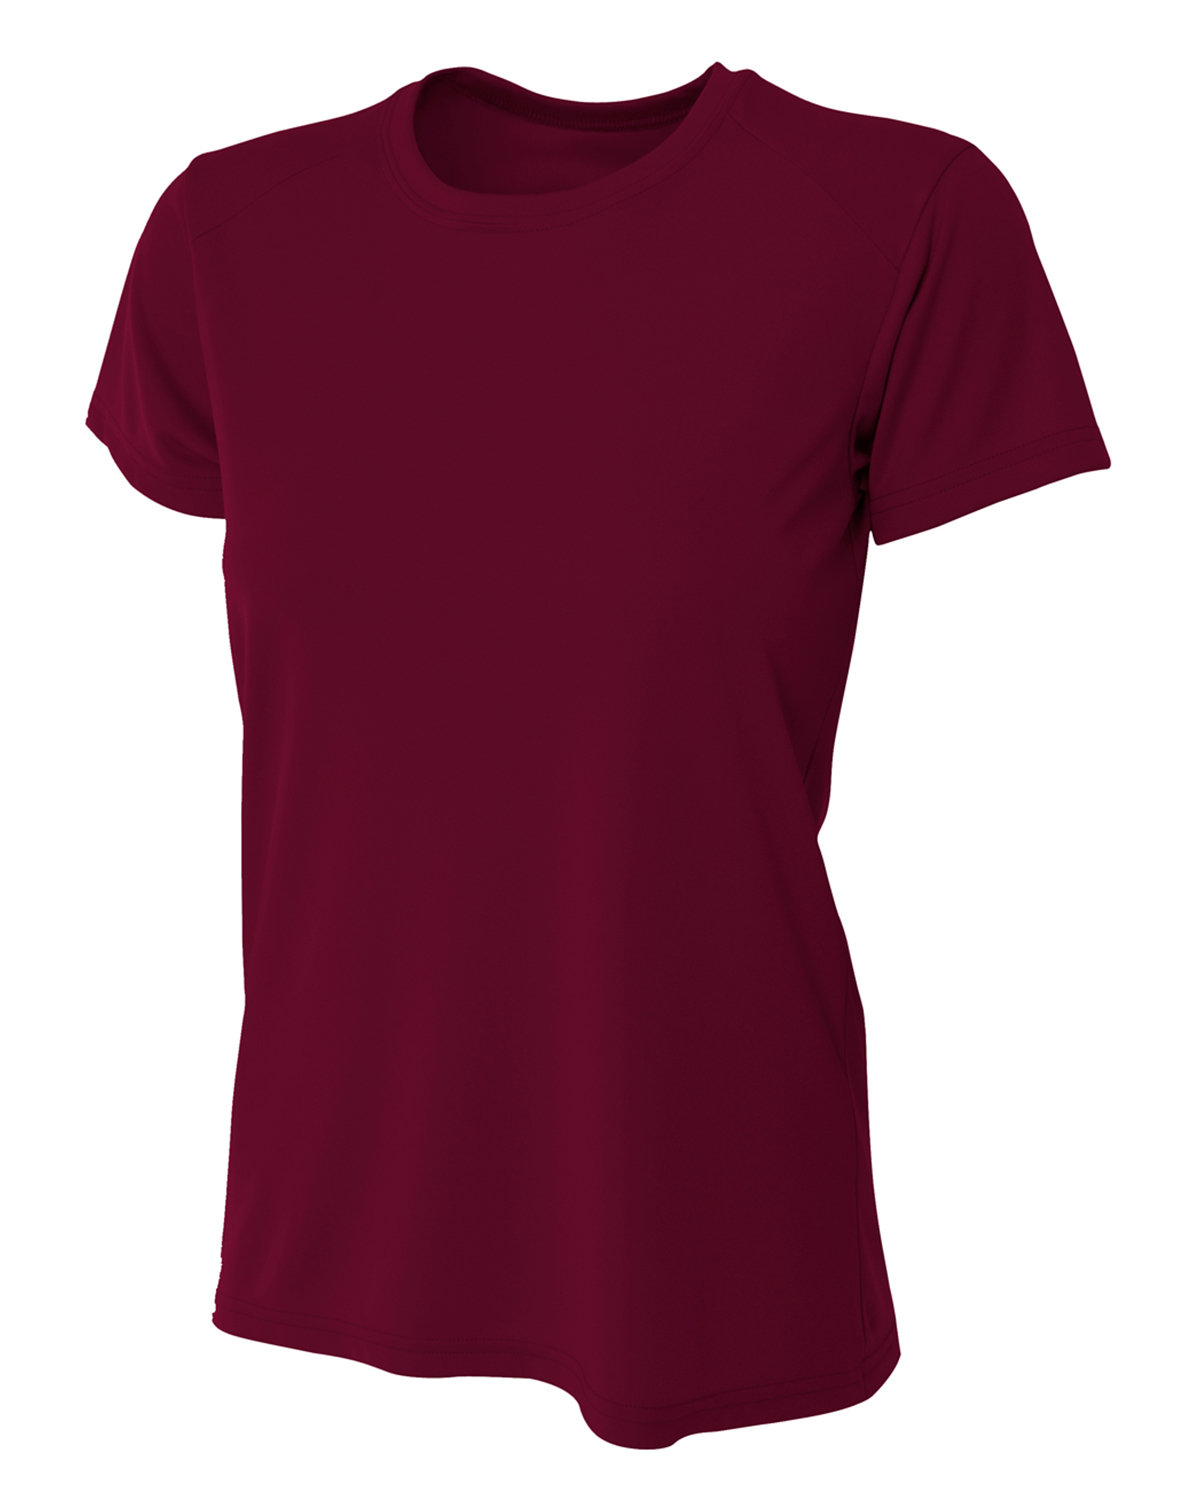 A4 Ladies' Cooling Performance T-Shirt MAROON